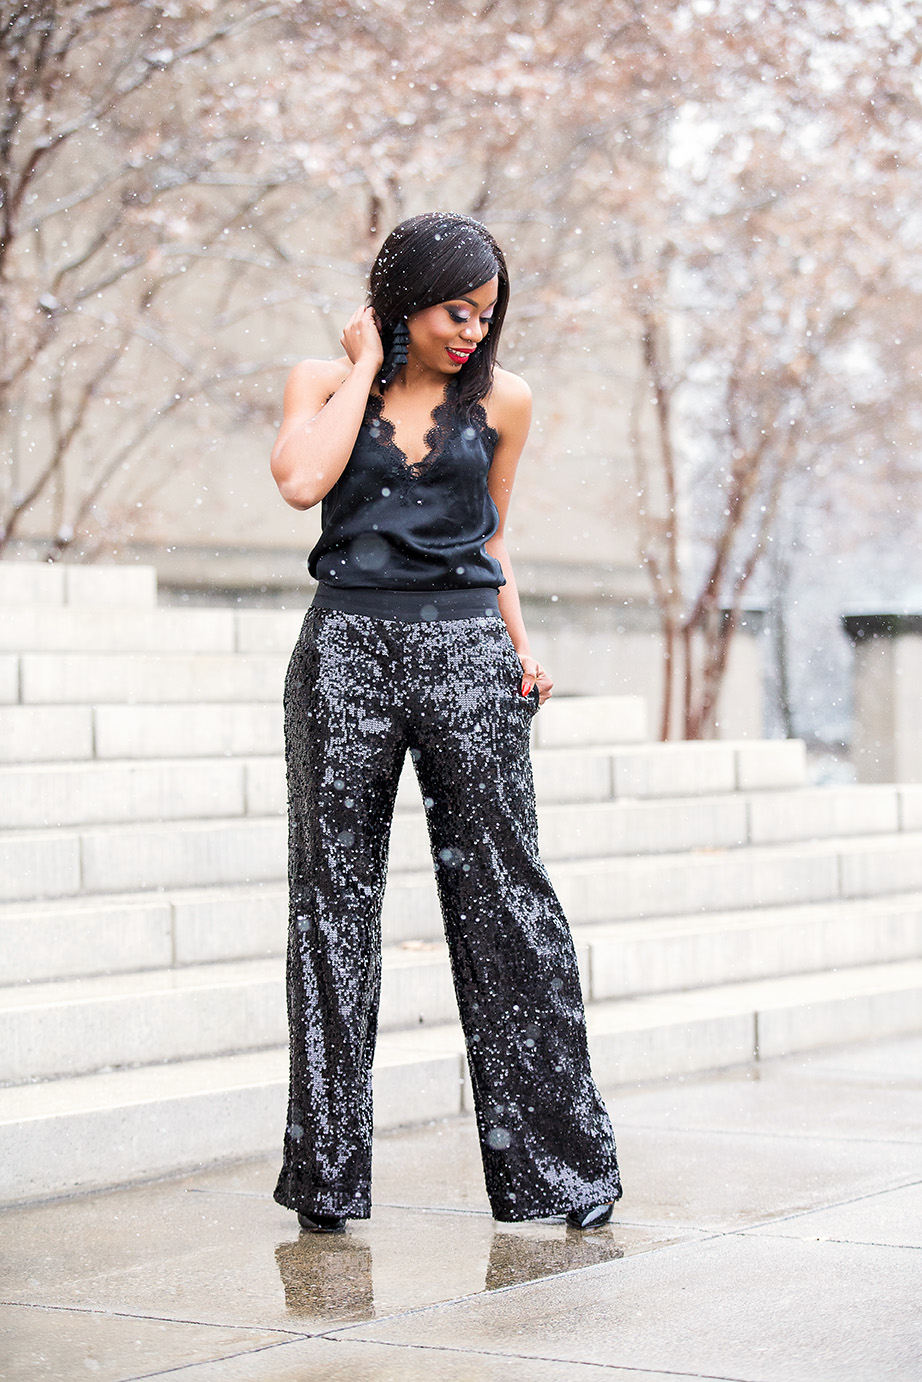 bauble bar tassel earrings, sequin palazzo pants, www.jadore-fashion.com